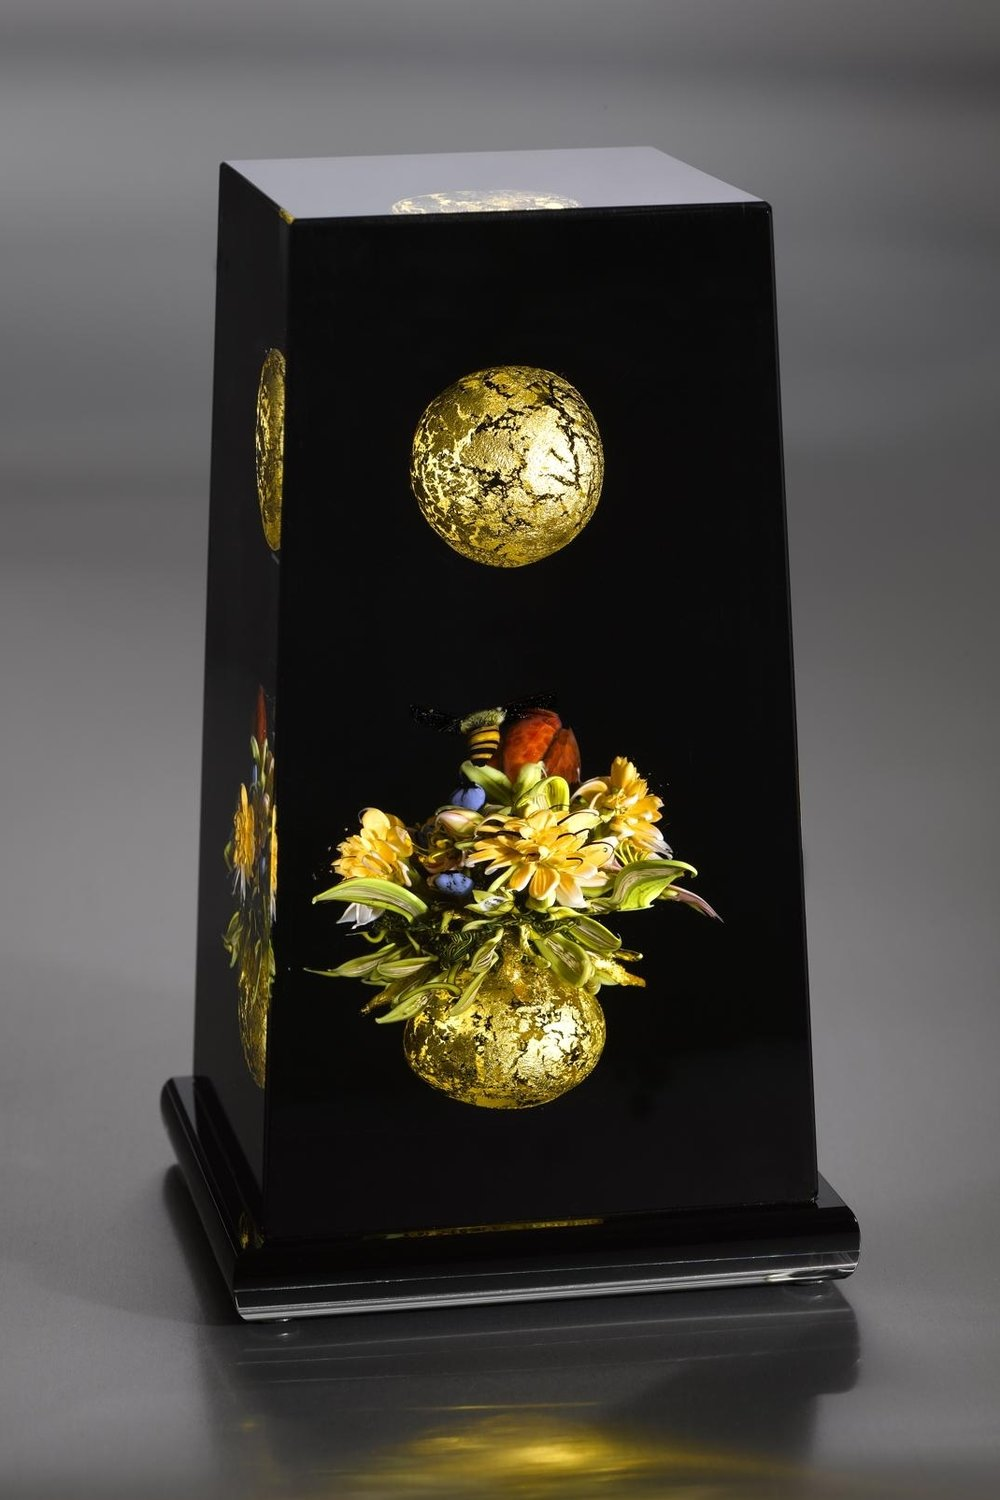 2010; Cloistered Column: Floral Cluster with Golden Orbs; H. 7.0 inches